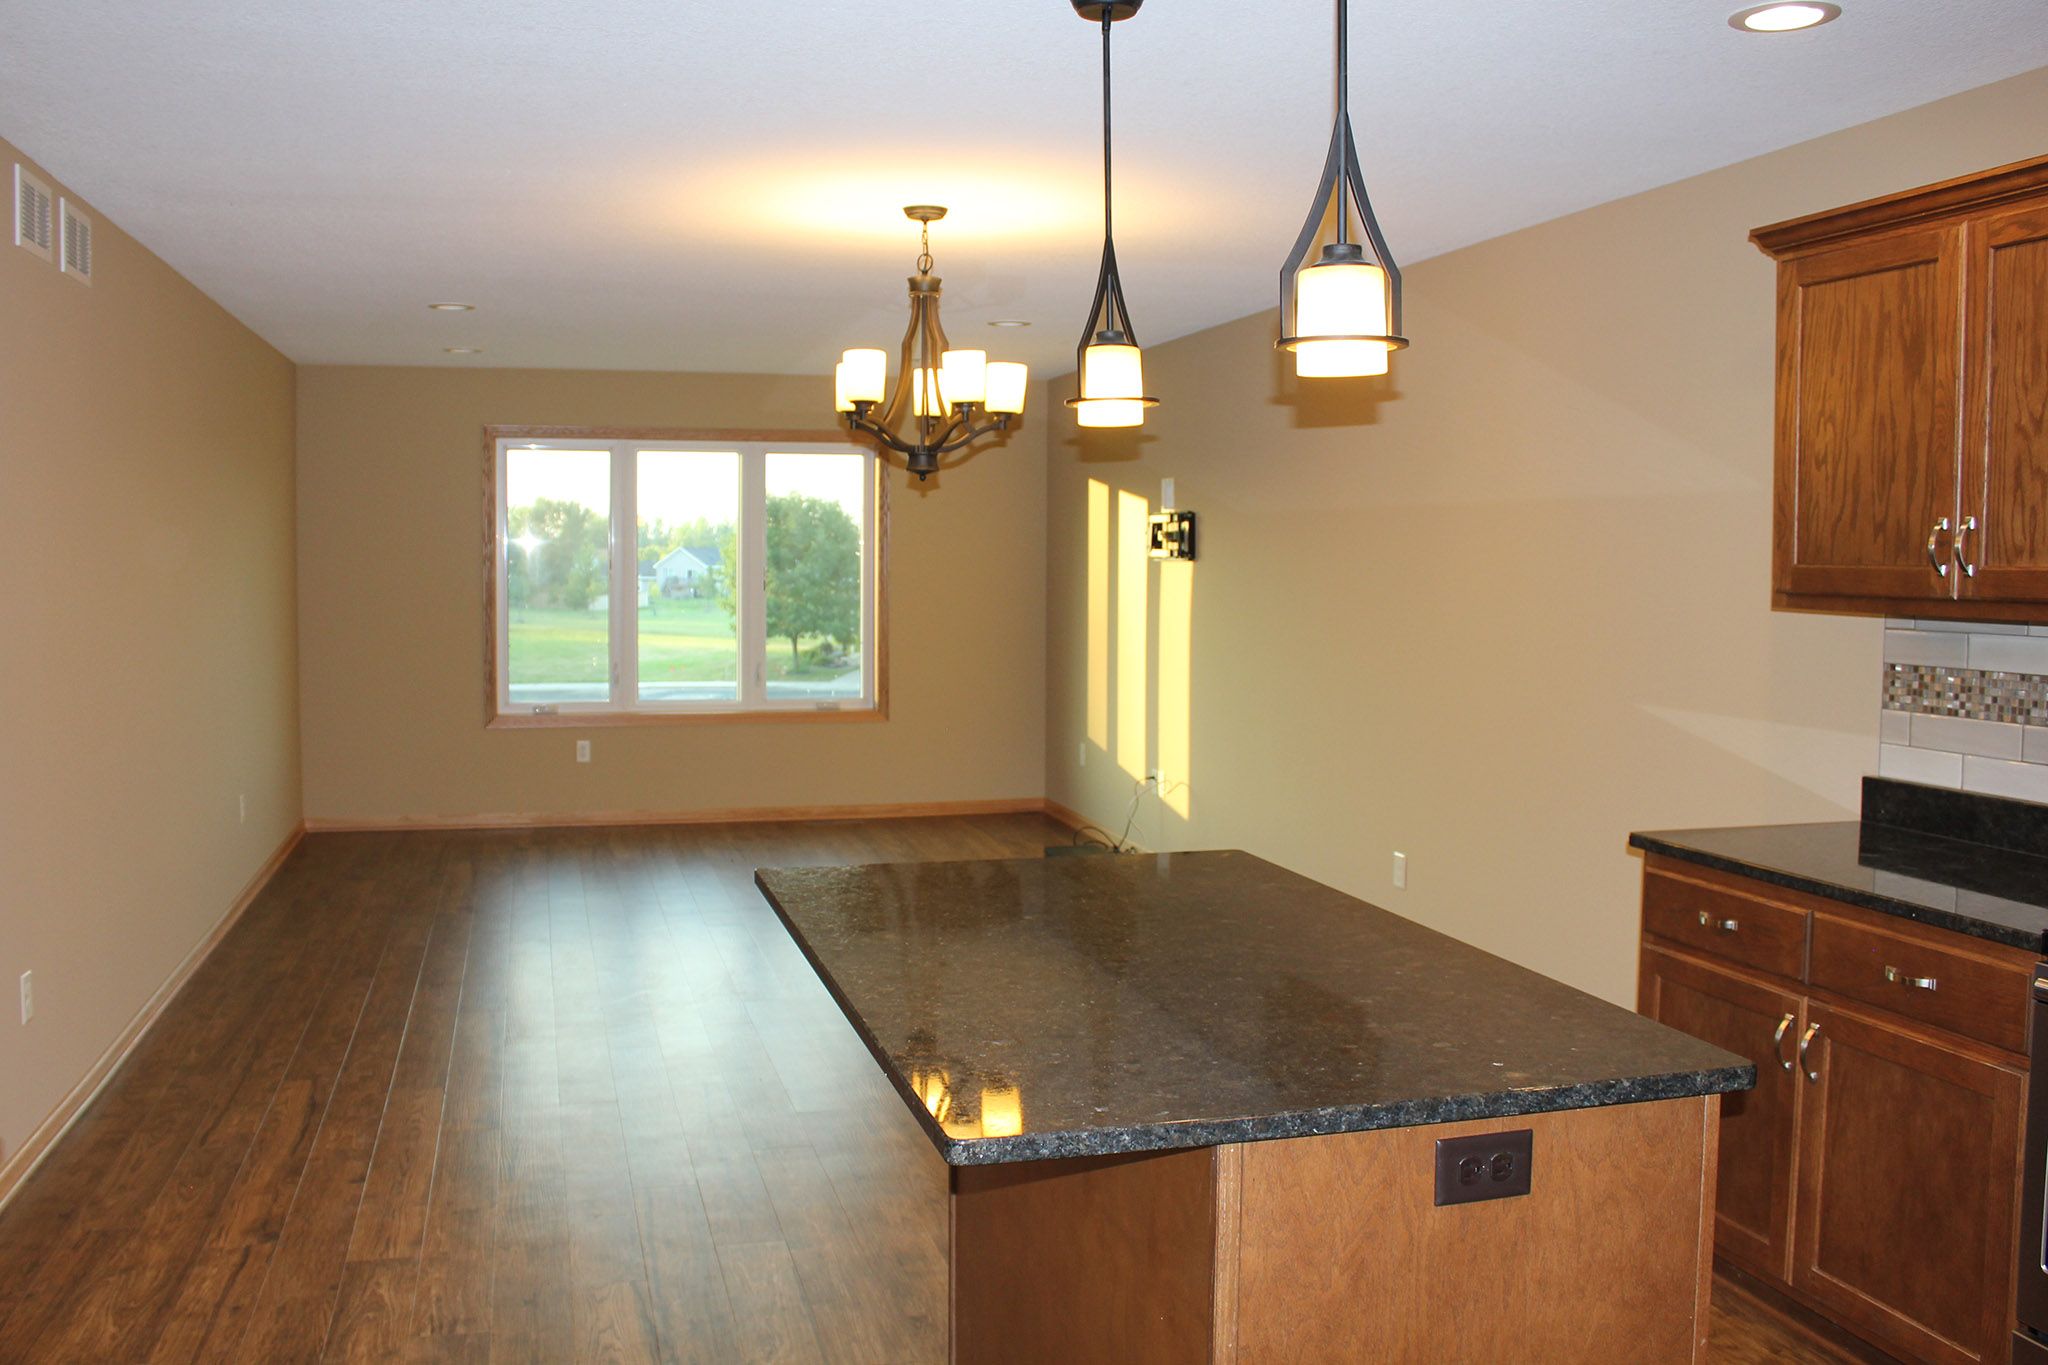 Kitchen island and living room